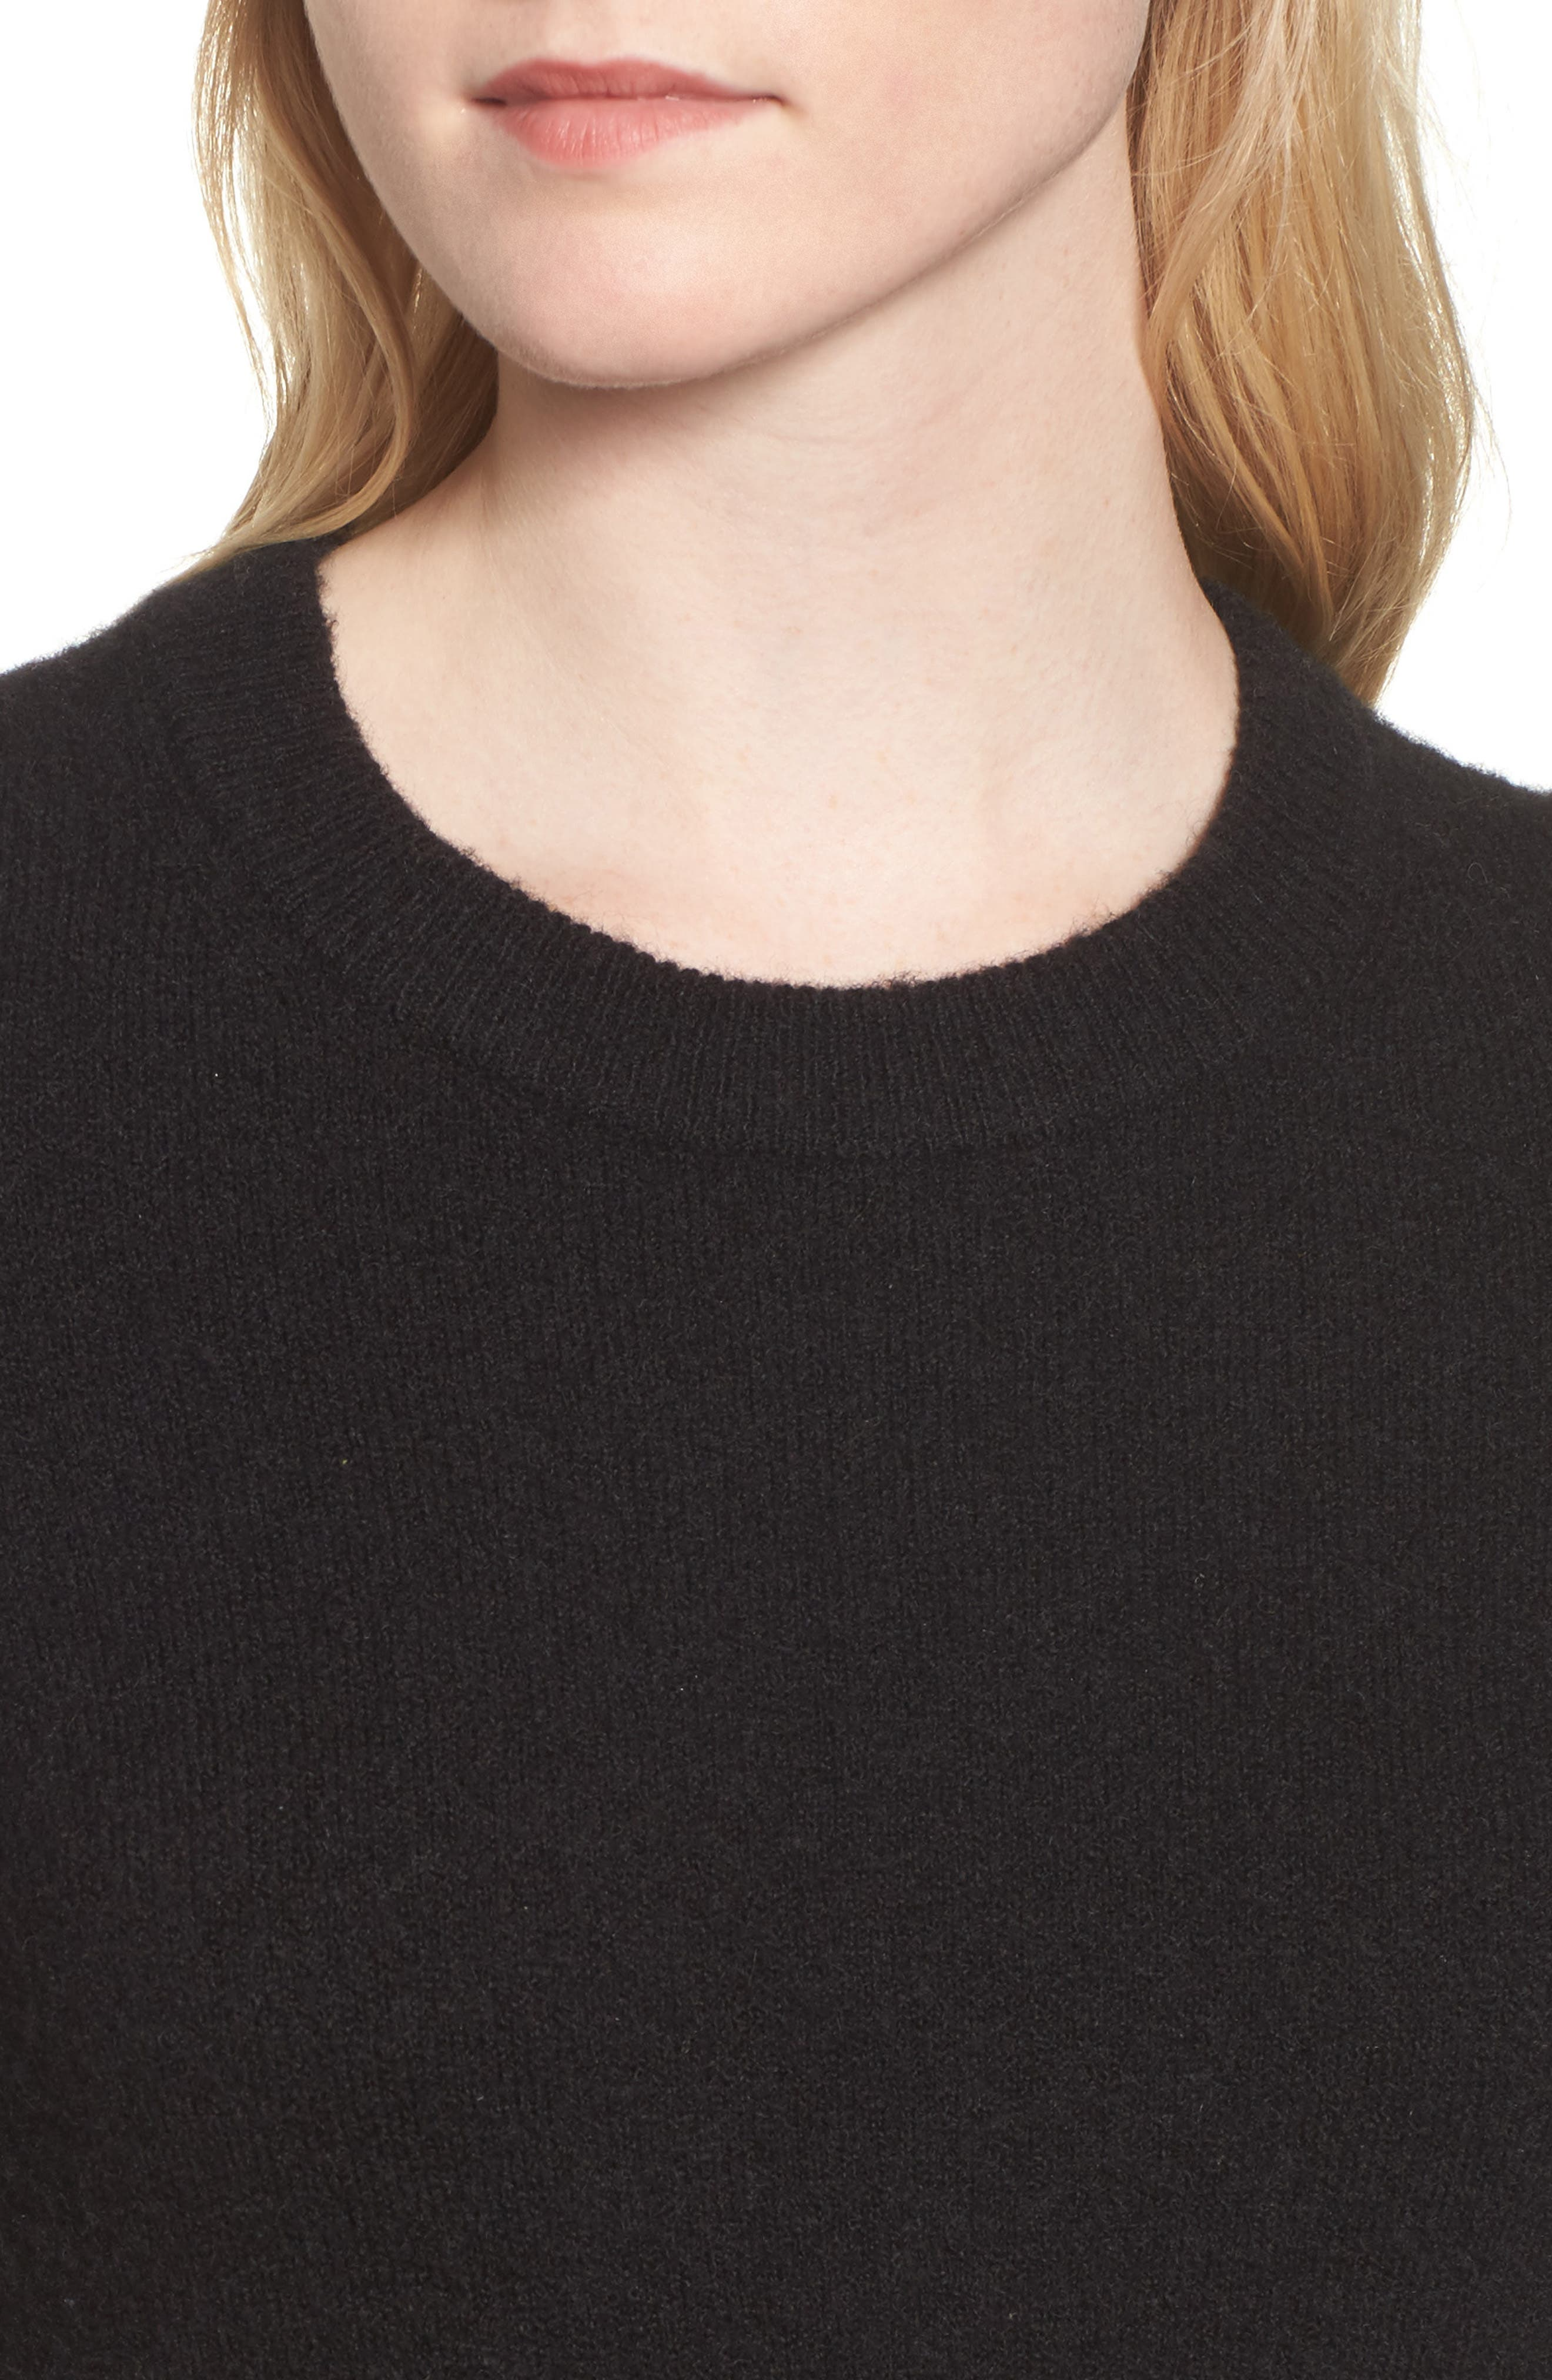 Fremont Colorblock Pullover Sweater,                             Alternate thumbnail 4, color,                             010